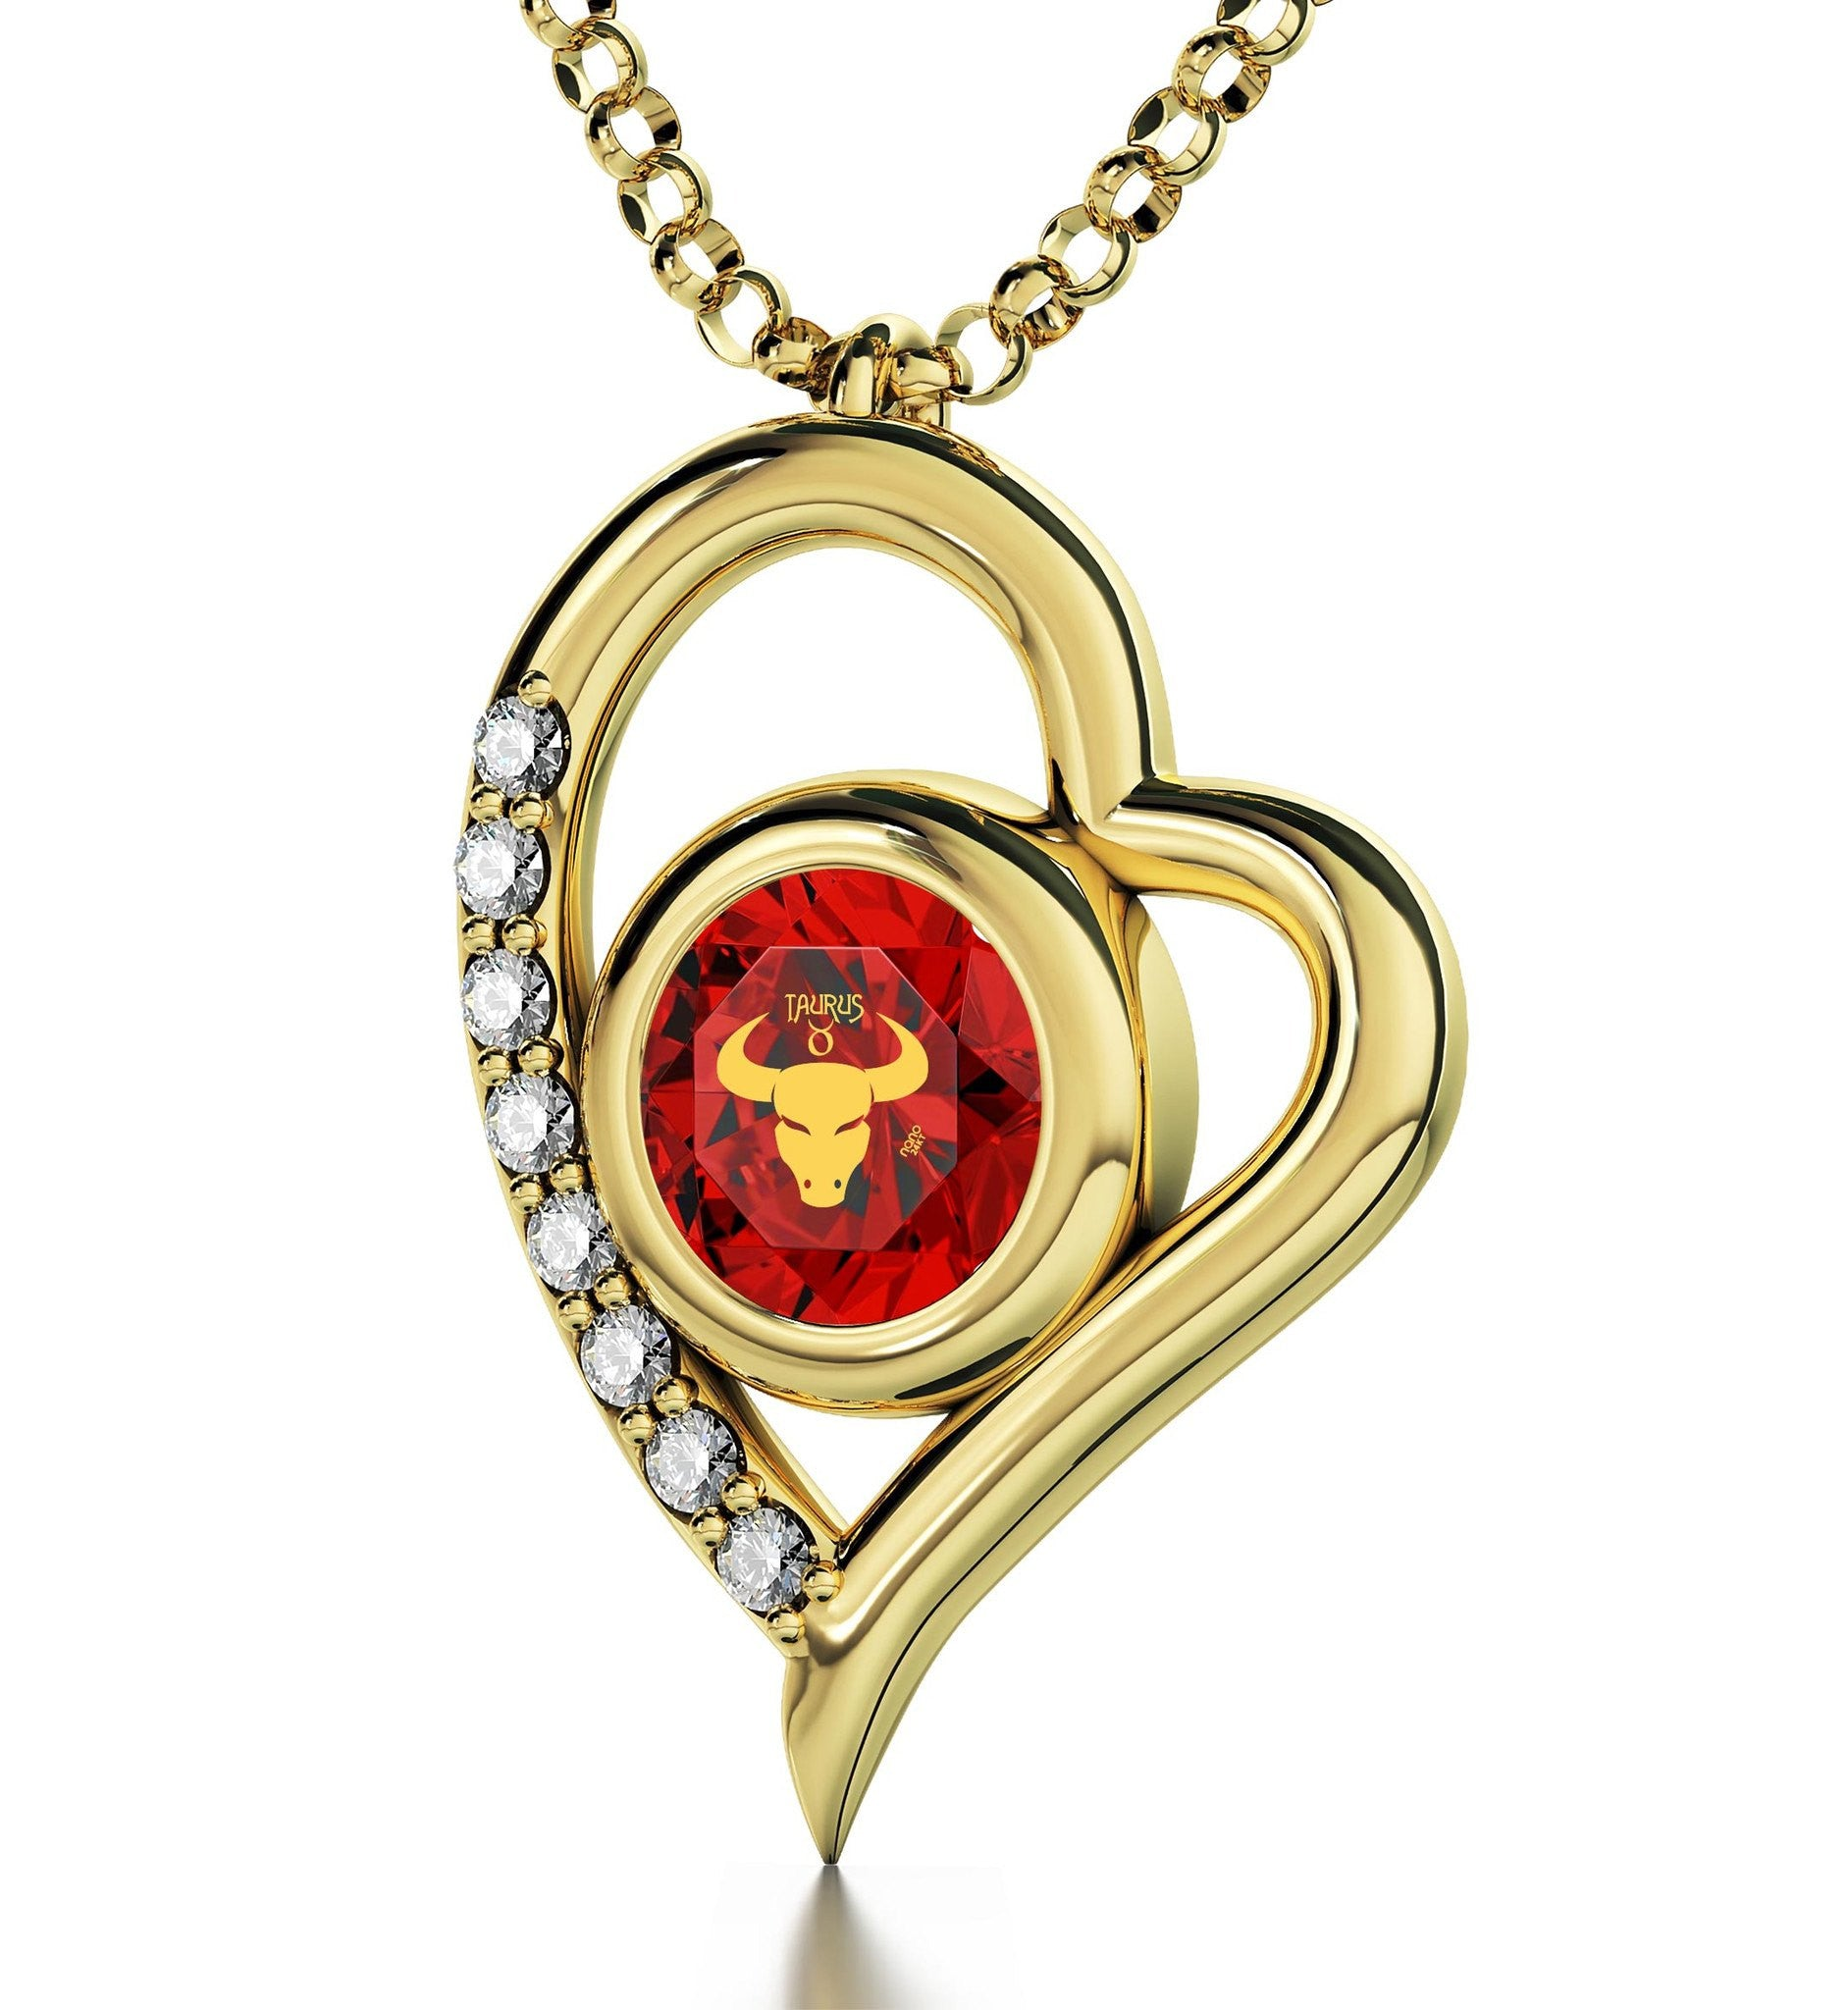 'Taurus Zodiac Sign Imprint, Heart Necklaces for Girlfriend, Top Gifts for Mom, by Nano Jewelry""